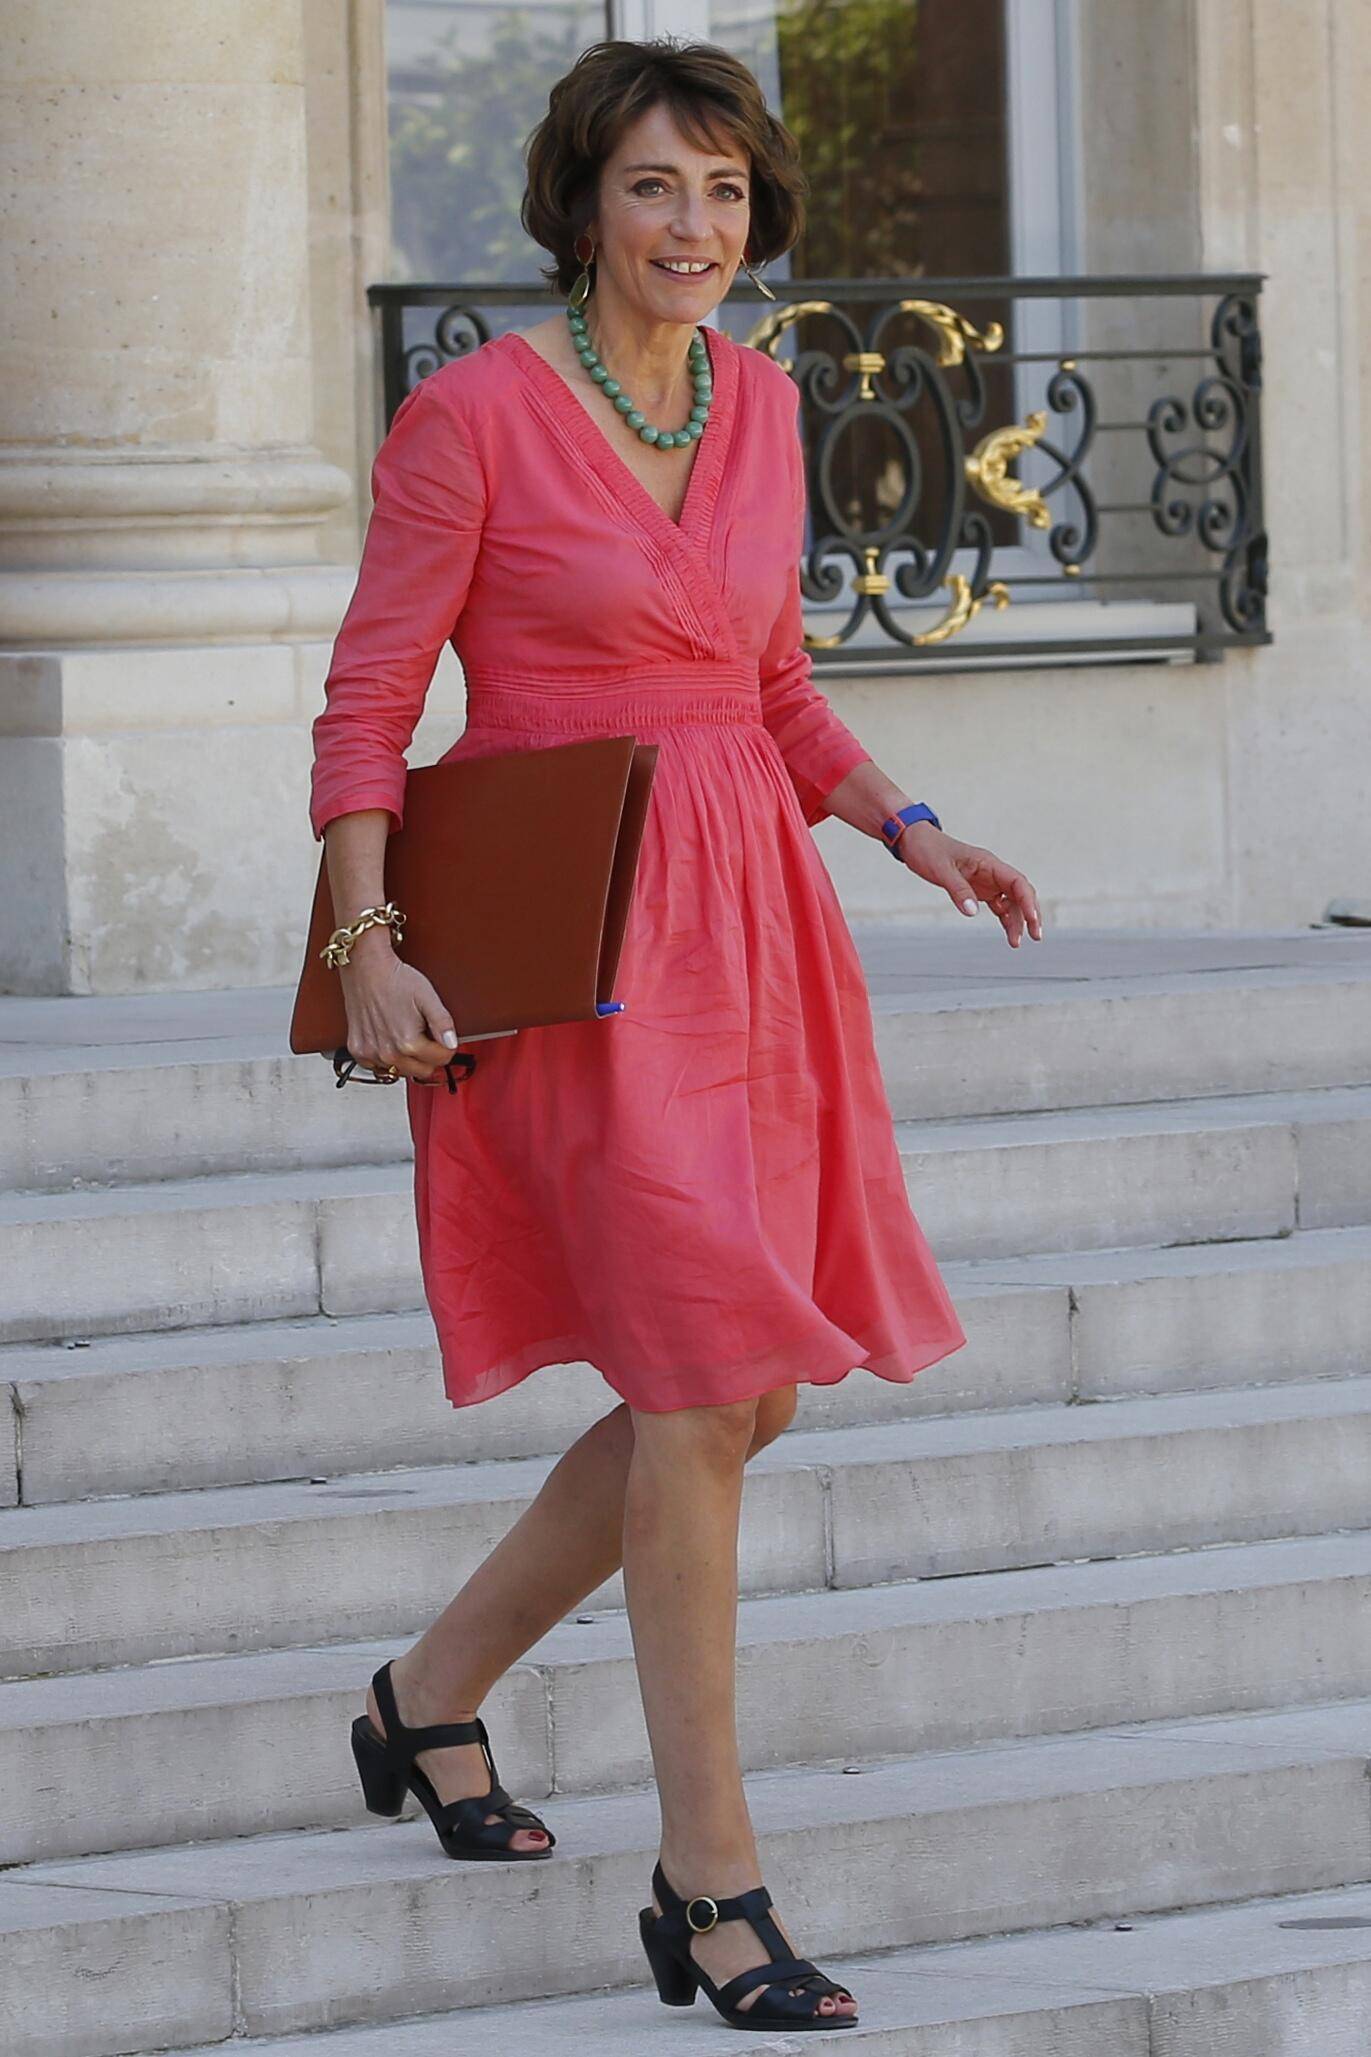 French Health Minister Marisol Touraine leaves the Elysee Palace following the weekly cabinet meeting in Paris, France, July 31, 2015.